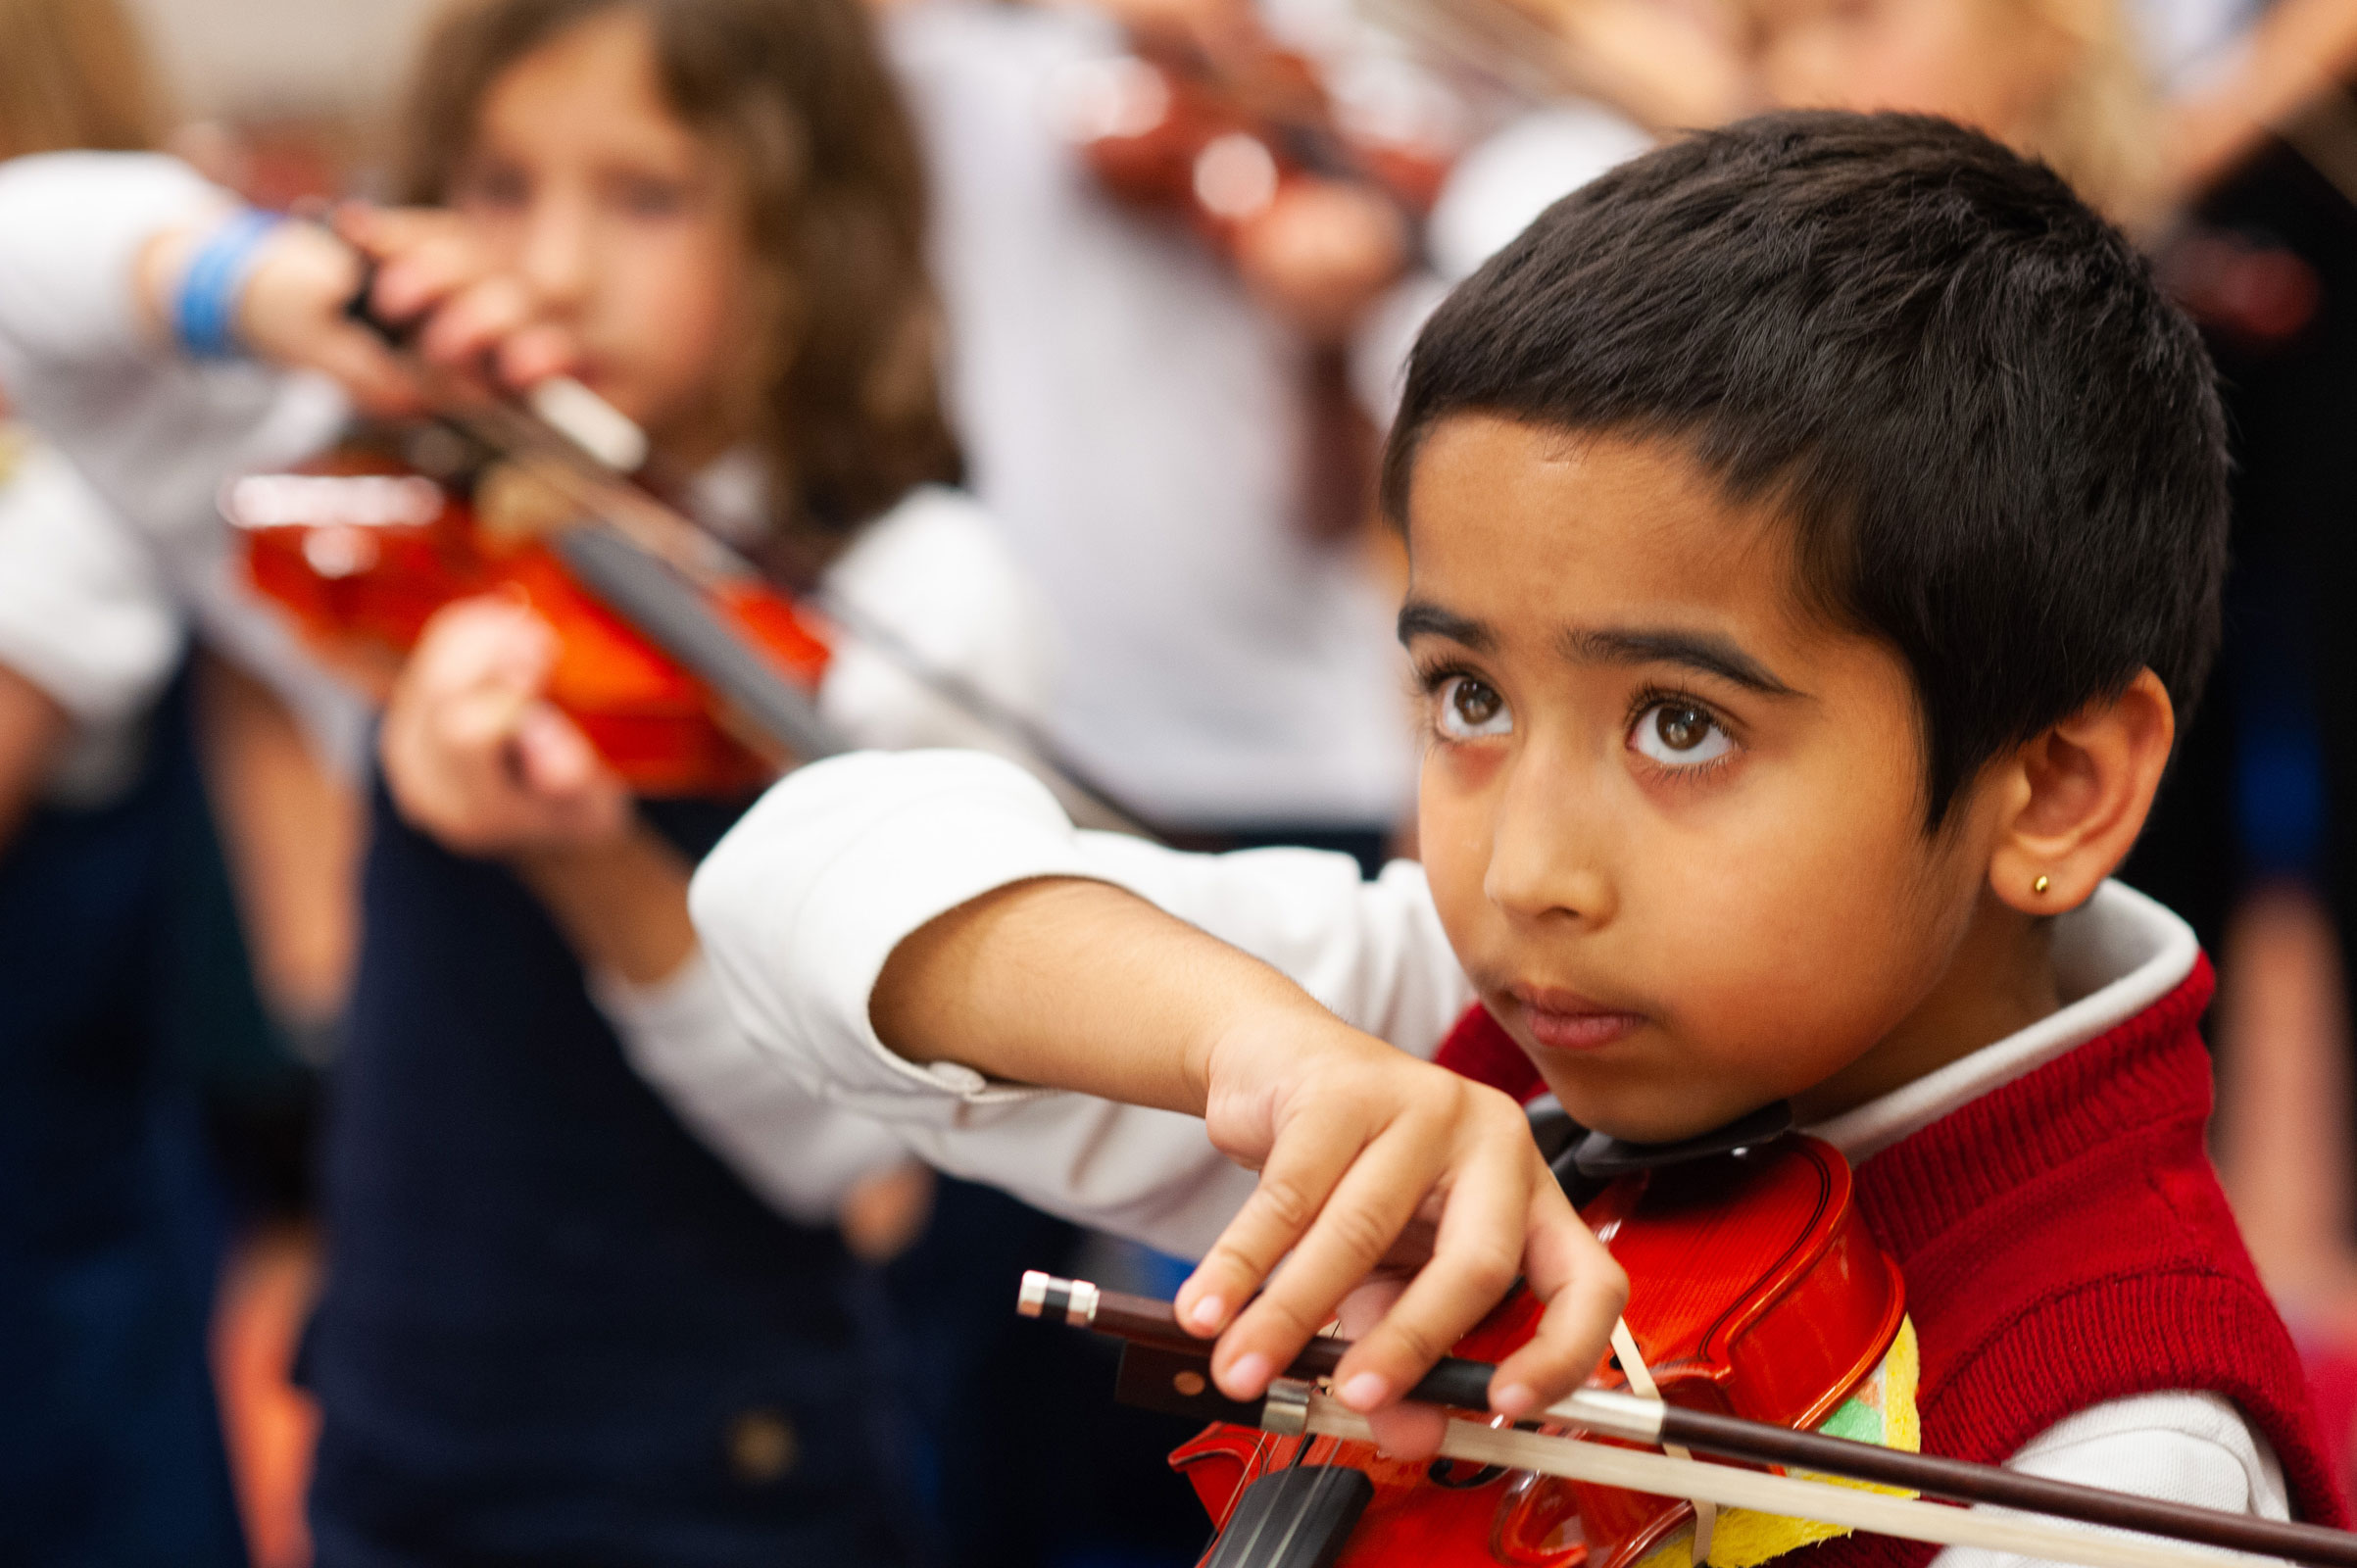 British-School-Editorial-Style-Photography-Closeup-Student-Playing-Violin-in-Class